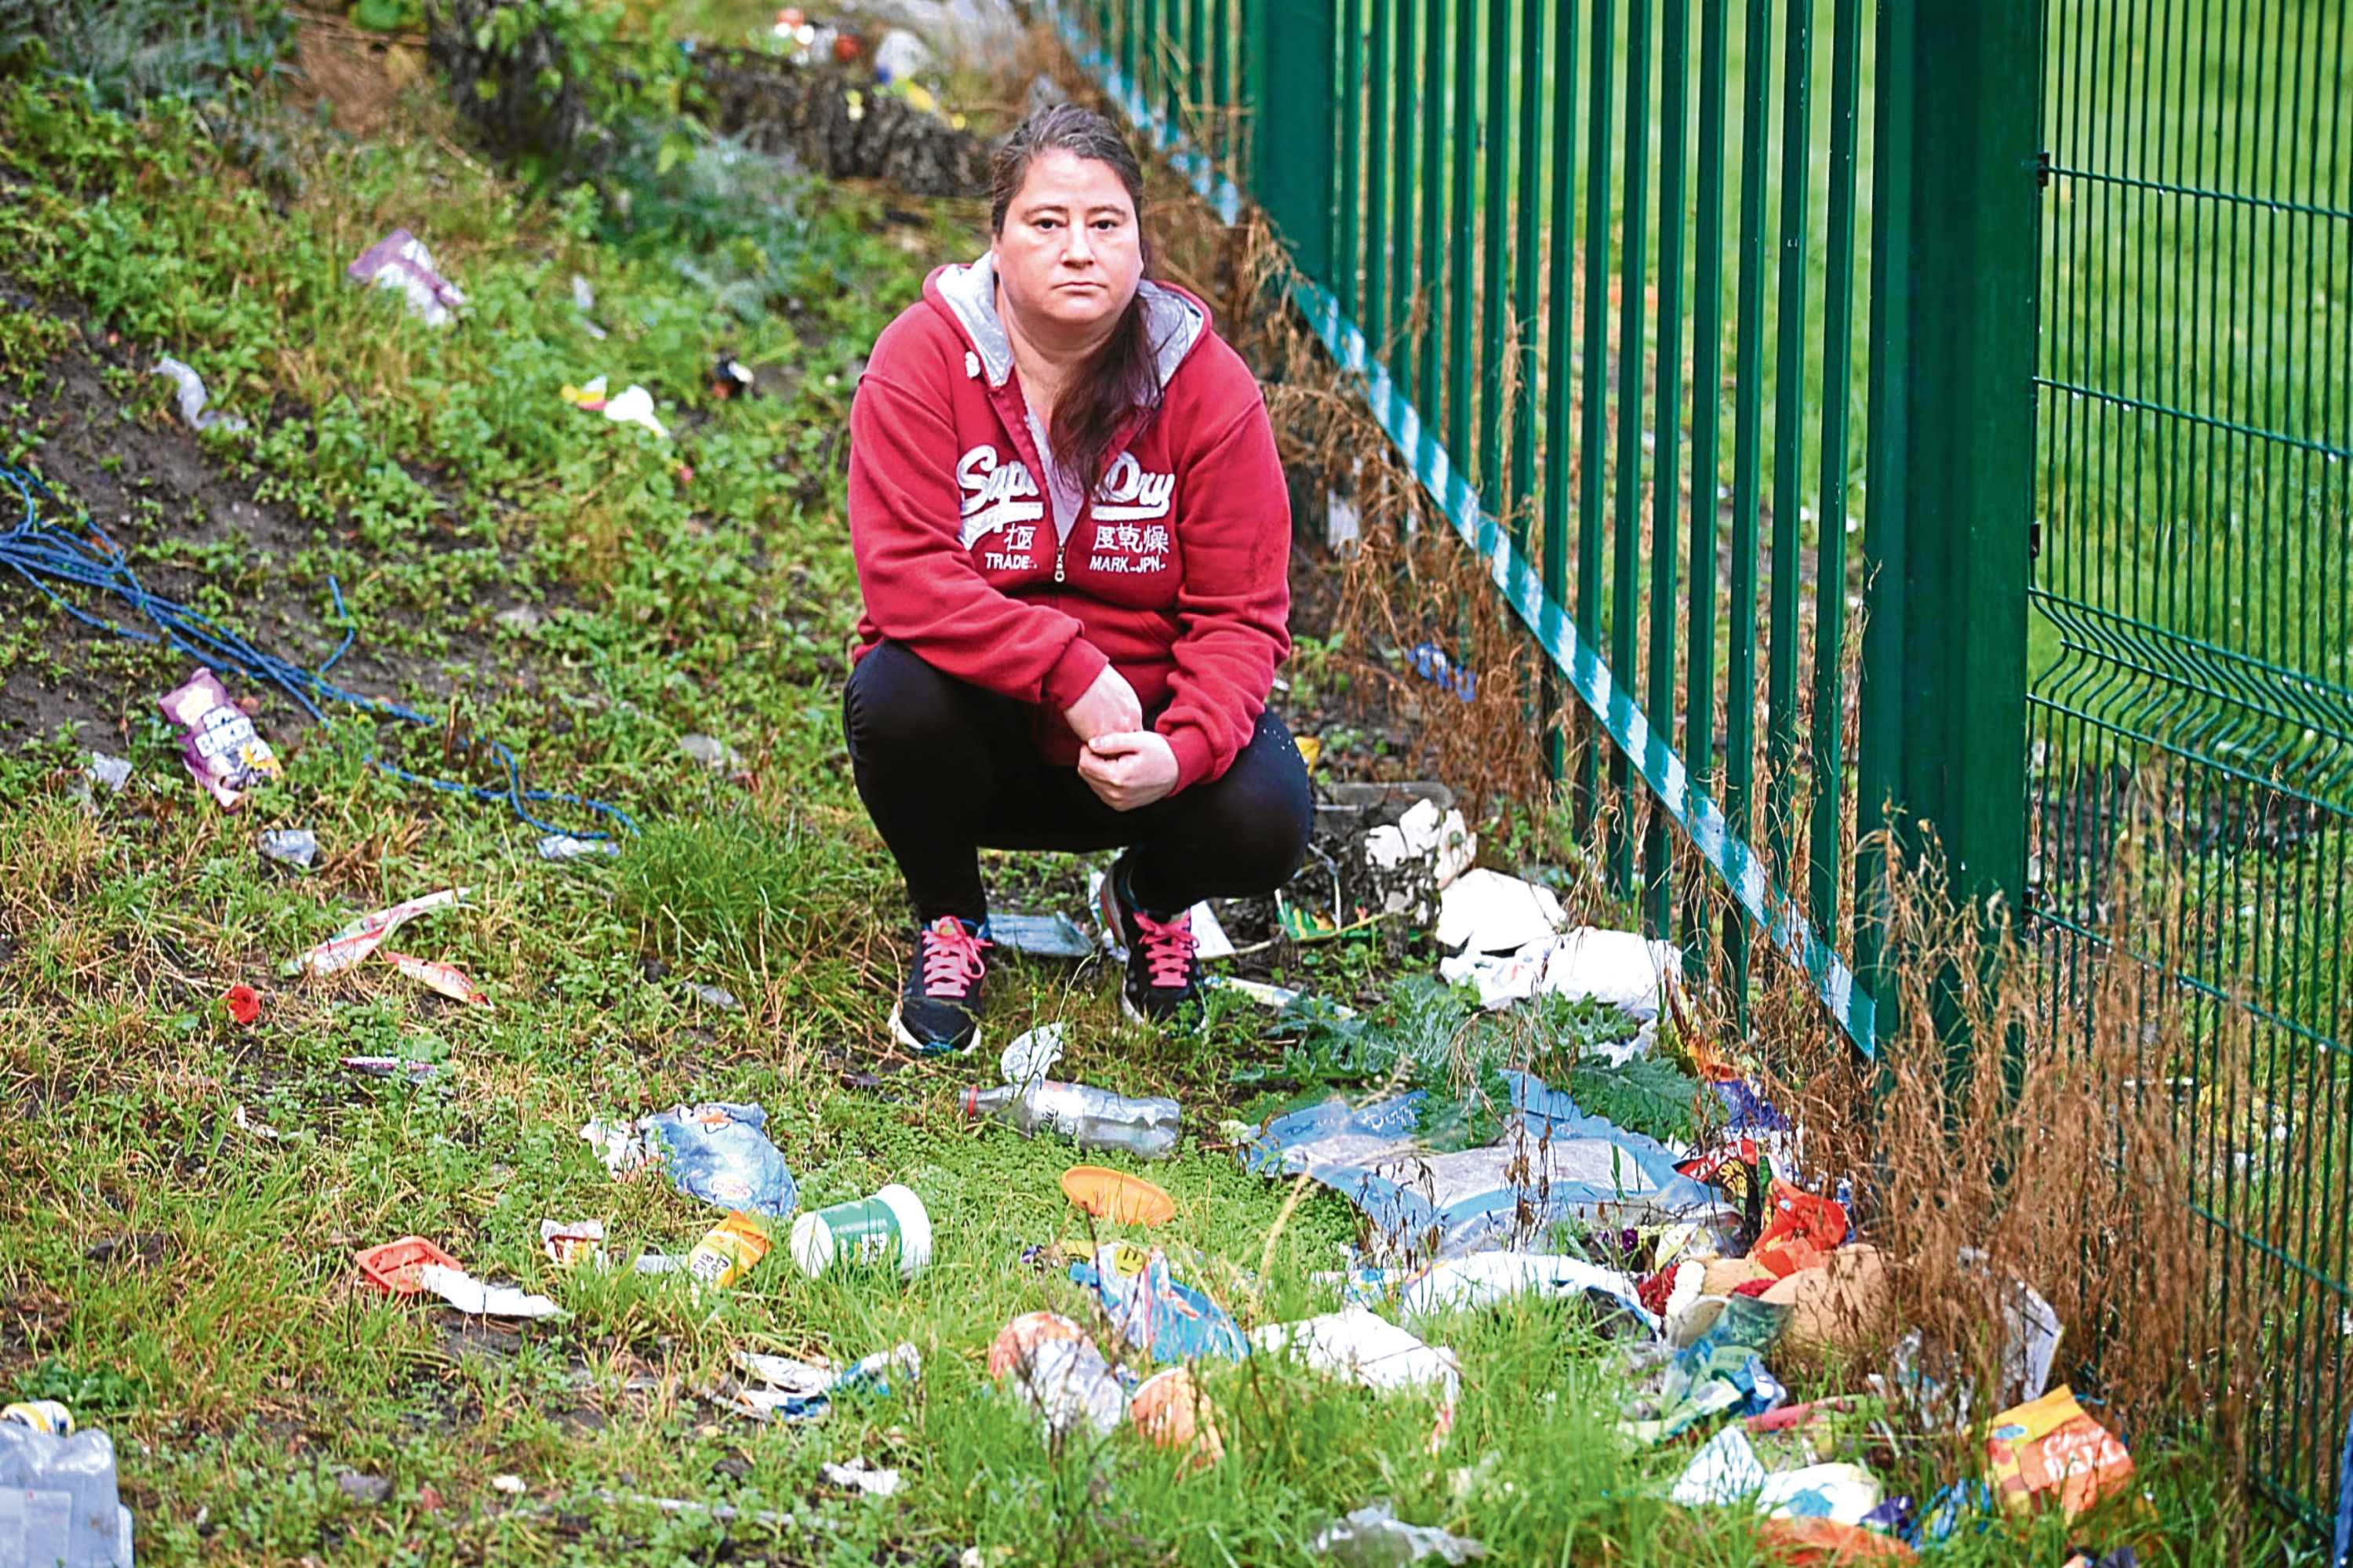 Charlotte Fraser, 41, who lives in Butterburn Square in Hilltown, surrounded by rubbish.